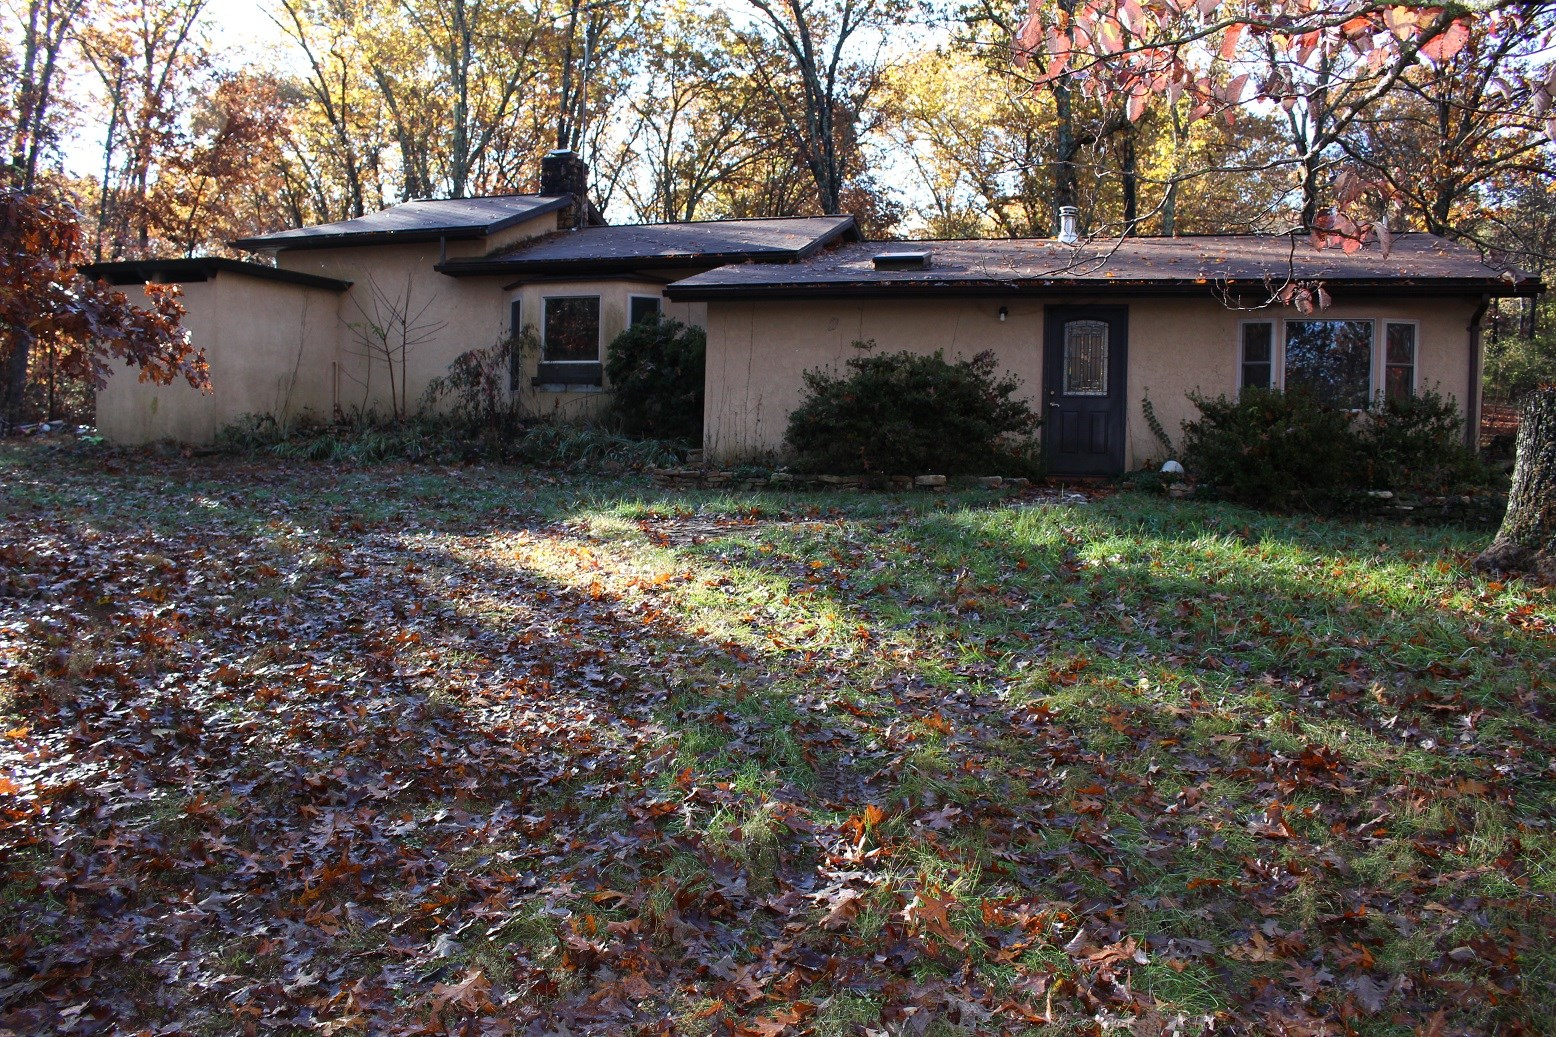 Cabin in the Woods for sale in Southern Missouri Ozarks